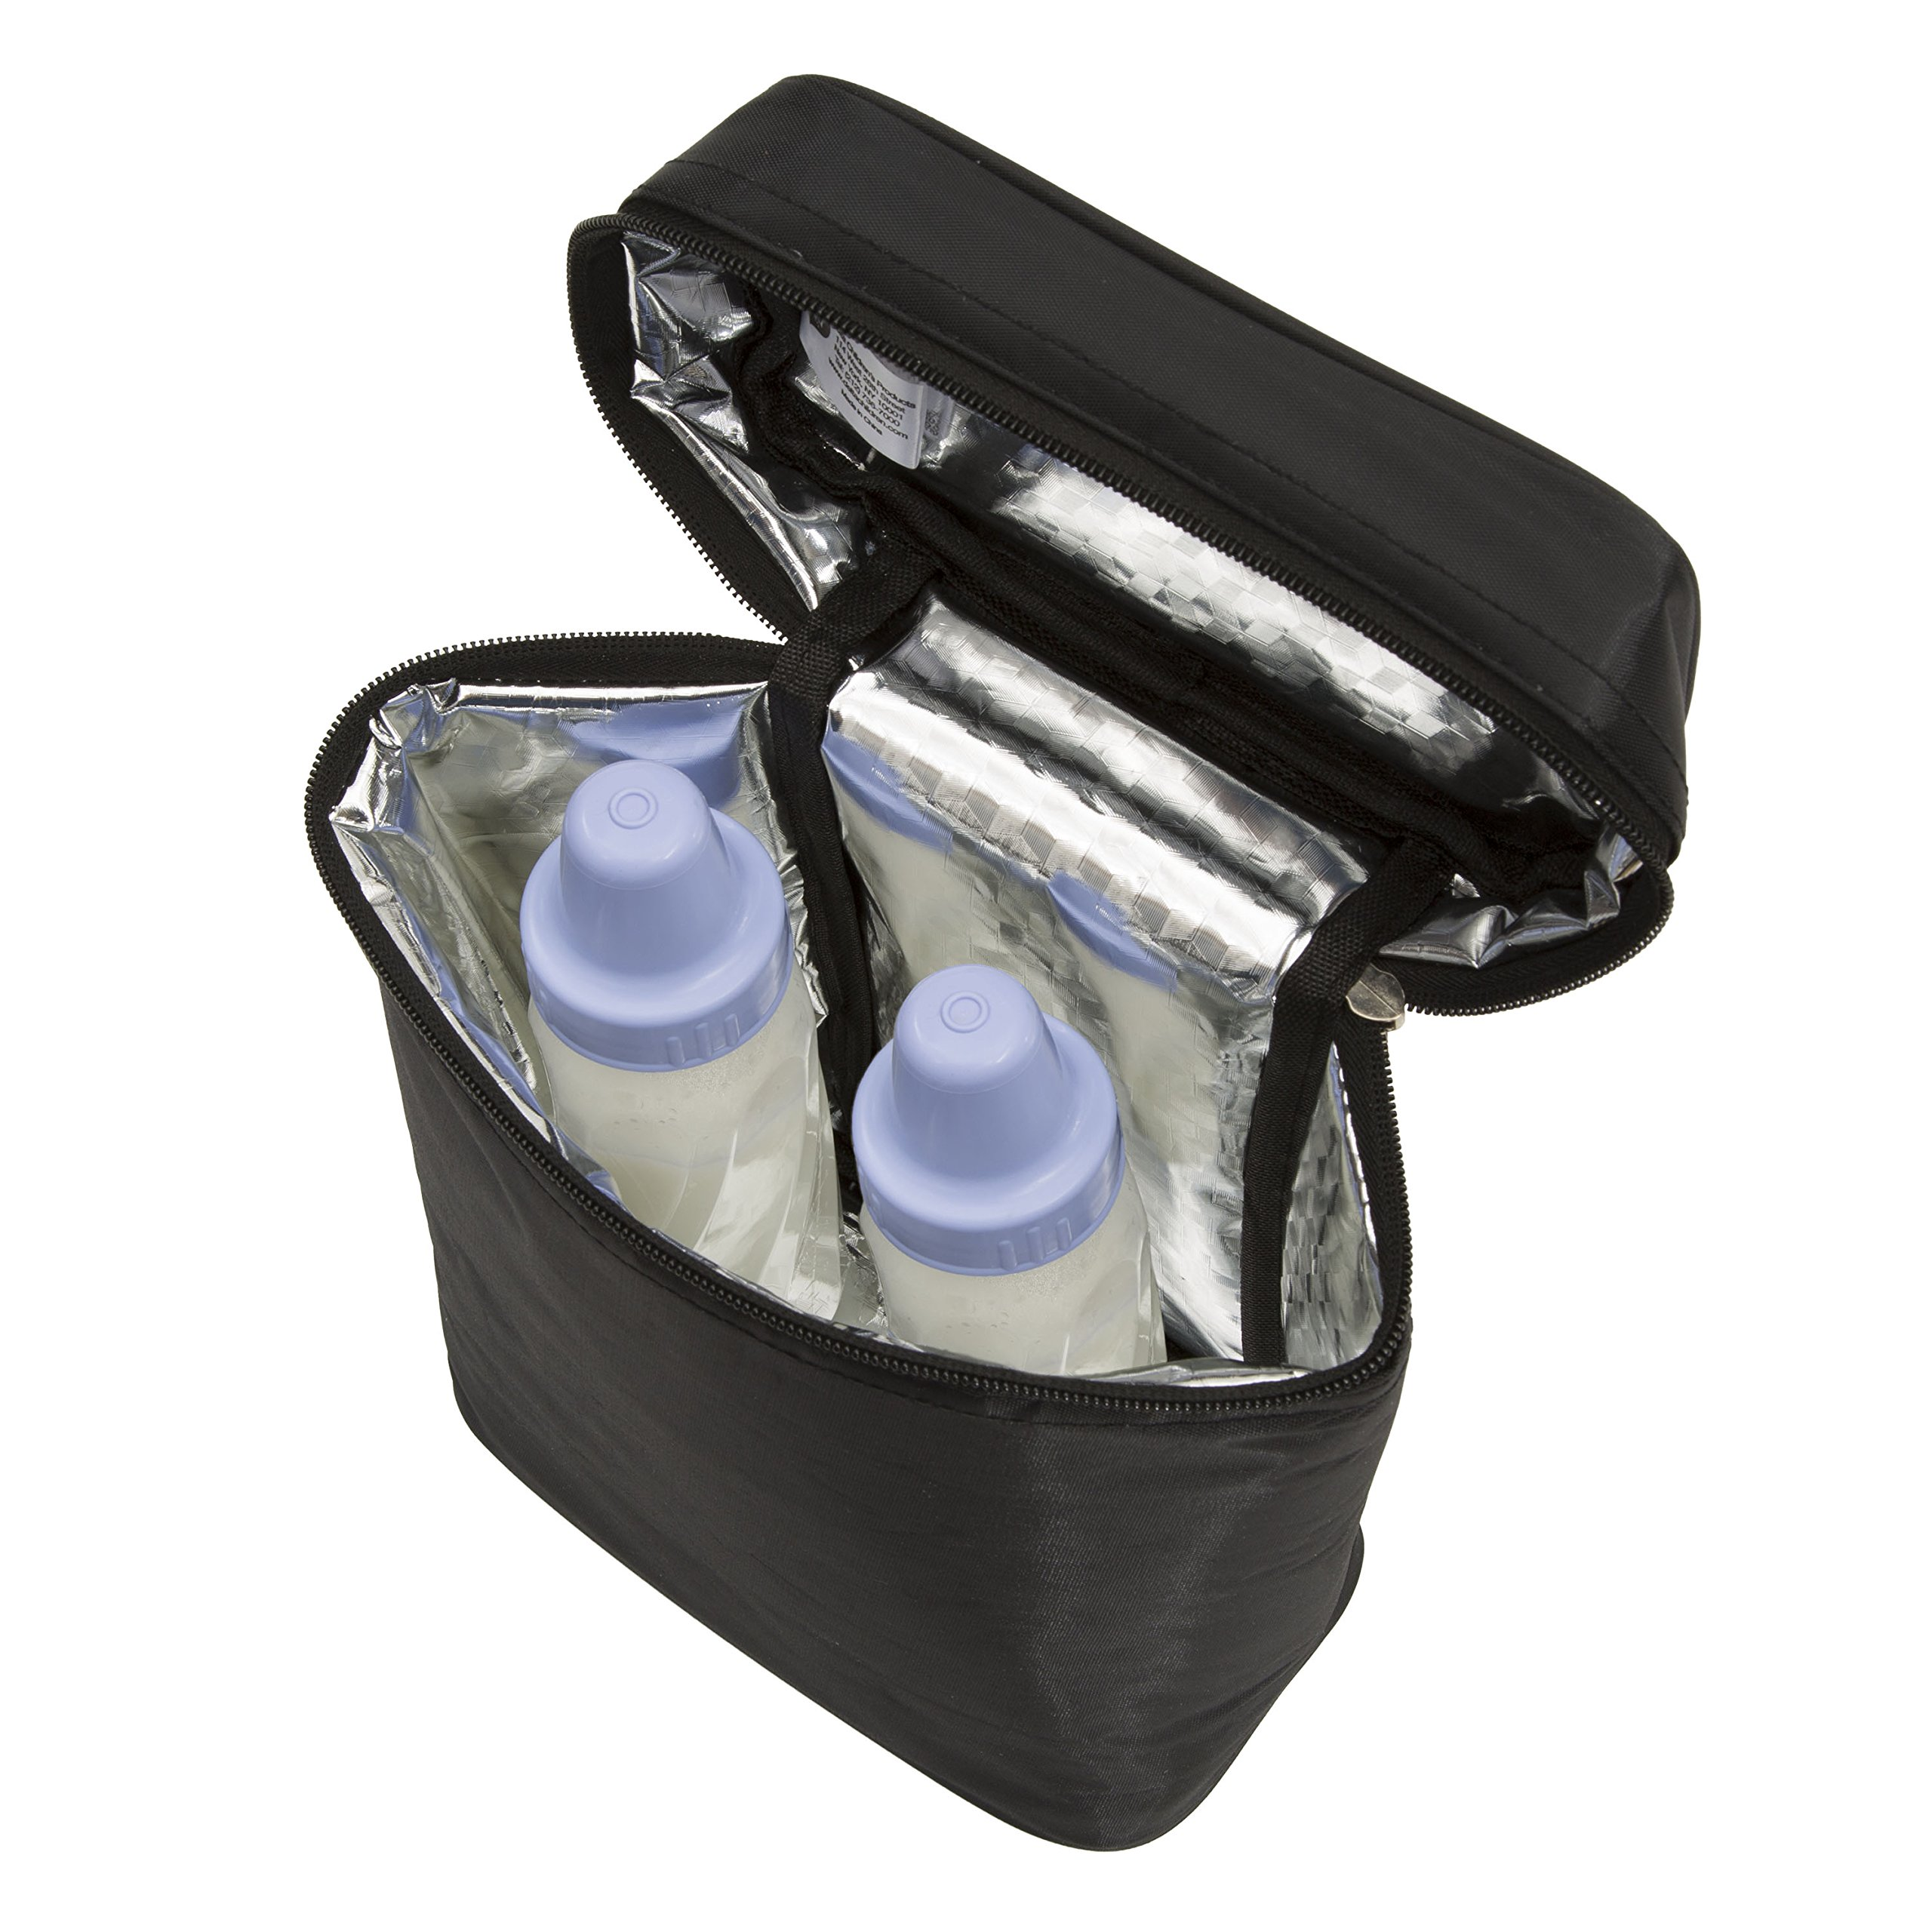 Delta Children Insulated Baby Bottle Bag | Keeps Breast Milk Cool, Stores Baby Bottles both Warm or Cold, Black by Delta Children (Image #6)